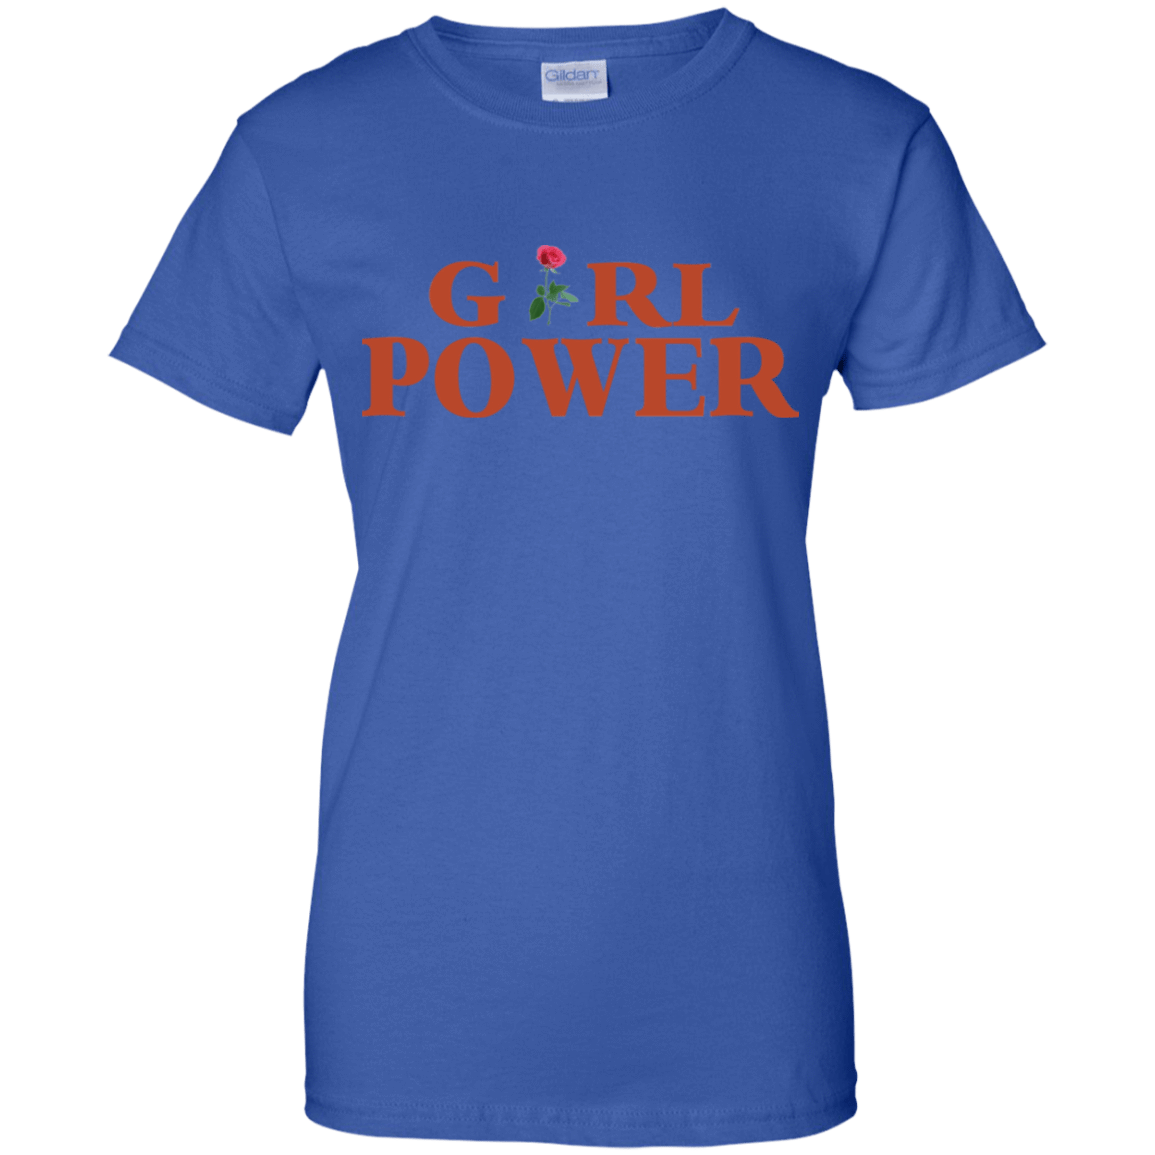 Girl Power Yellow 939-9264-73890289-44807 - Tee Ript